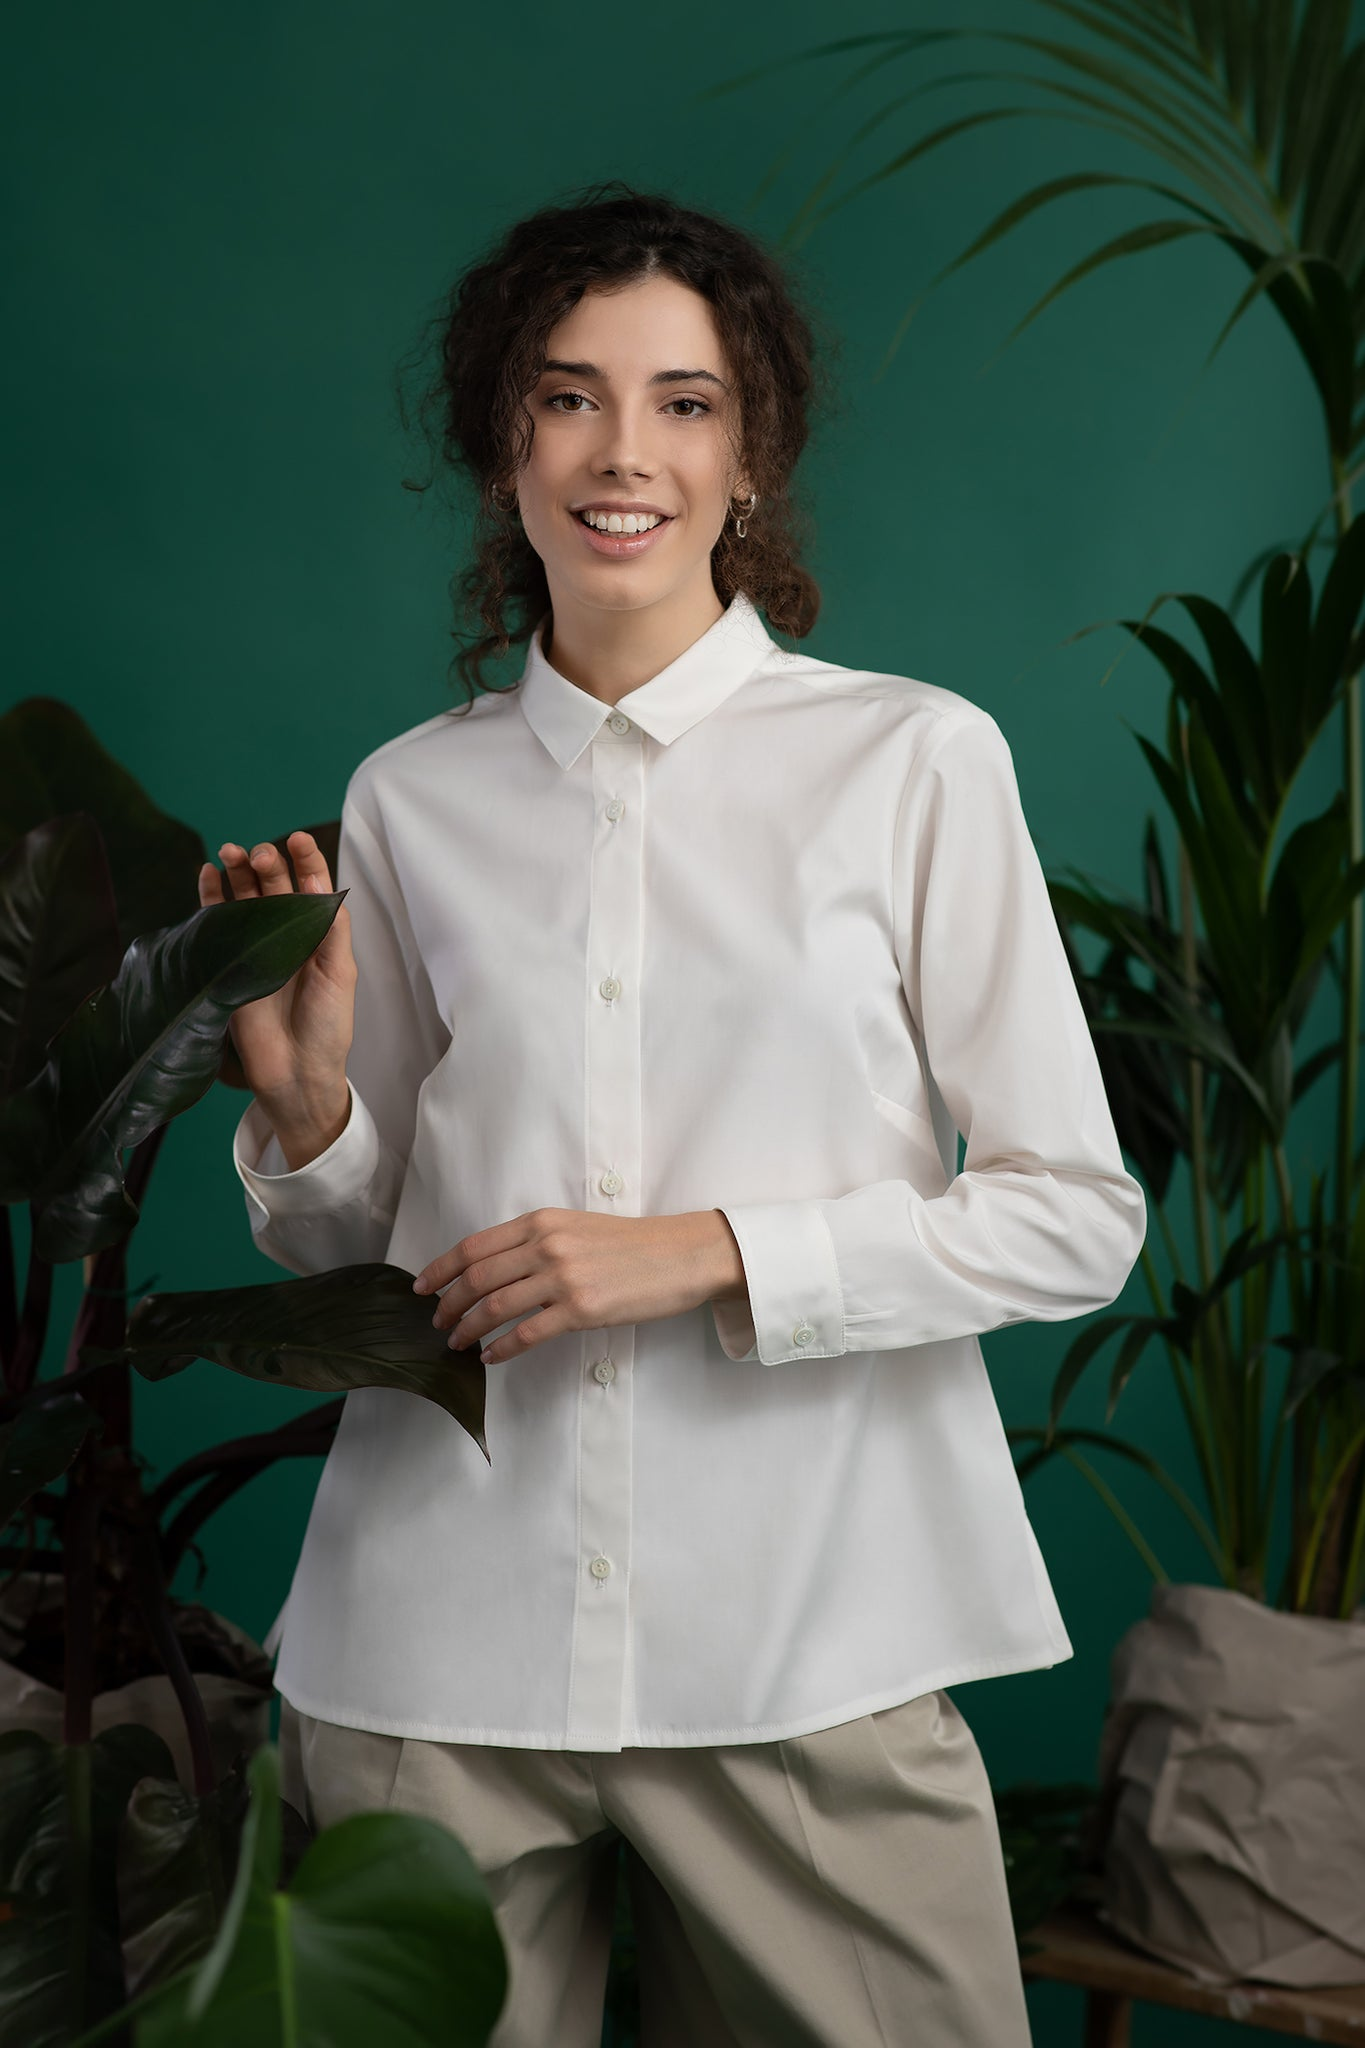 A model in white ecological shirt - MILANO. Ethical and sustainable ECO fair fashion